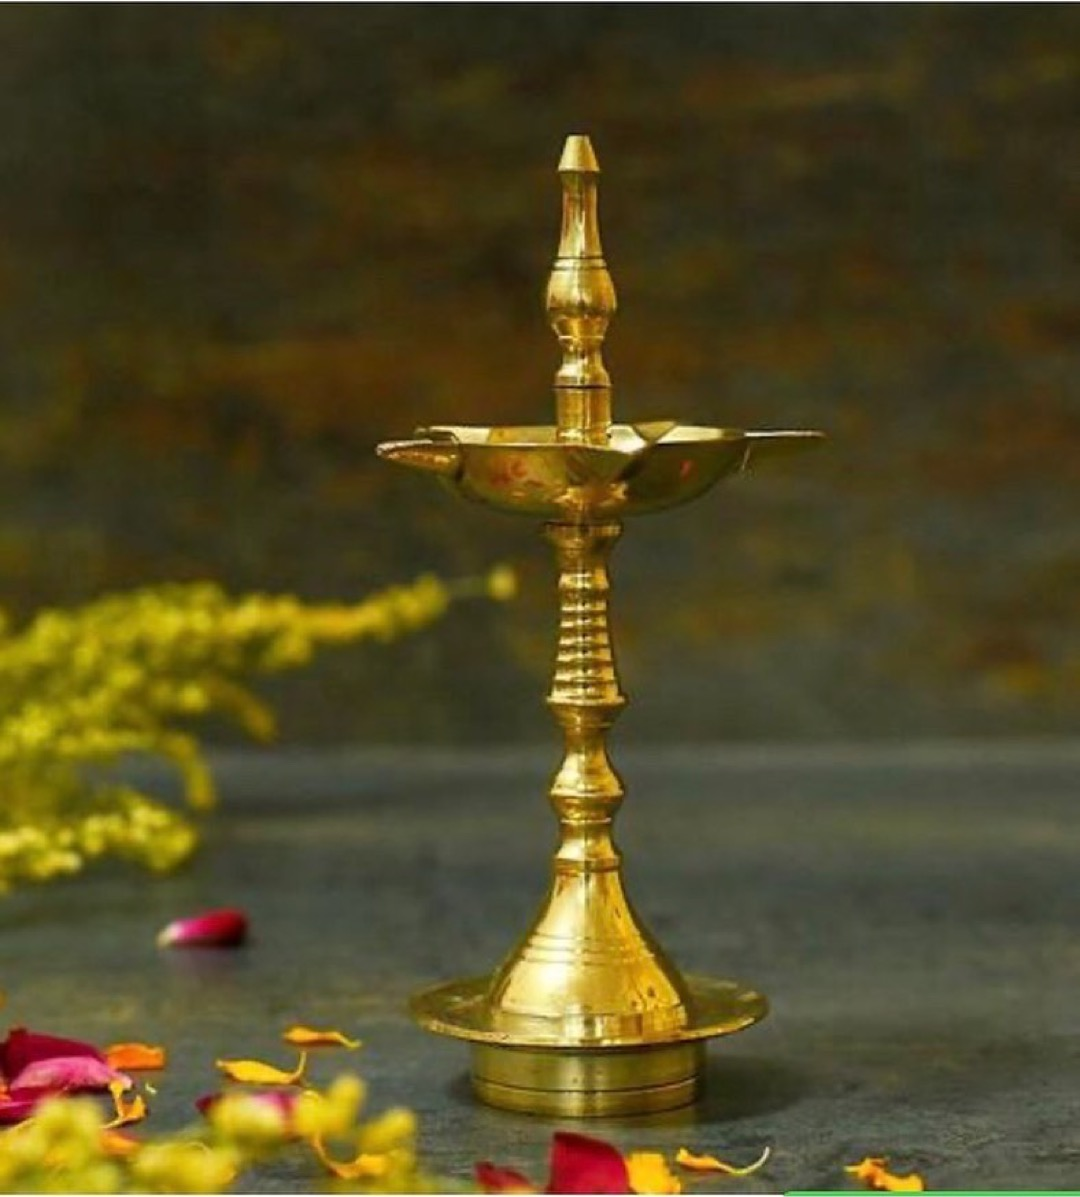 Theartisanalhandicrafts@gmail.com  Handcrafted Traditional deepak oil lamp made from brass. . Dm for more details  . #godidols #yoga #spritual #peace #buddha #handicraft  #handmade #brasshandicraft #dreamcatcher #painting #russia #usa #france #positivevibes #decore #interior pic.twitter.com/ZPhNYb41xD